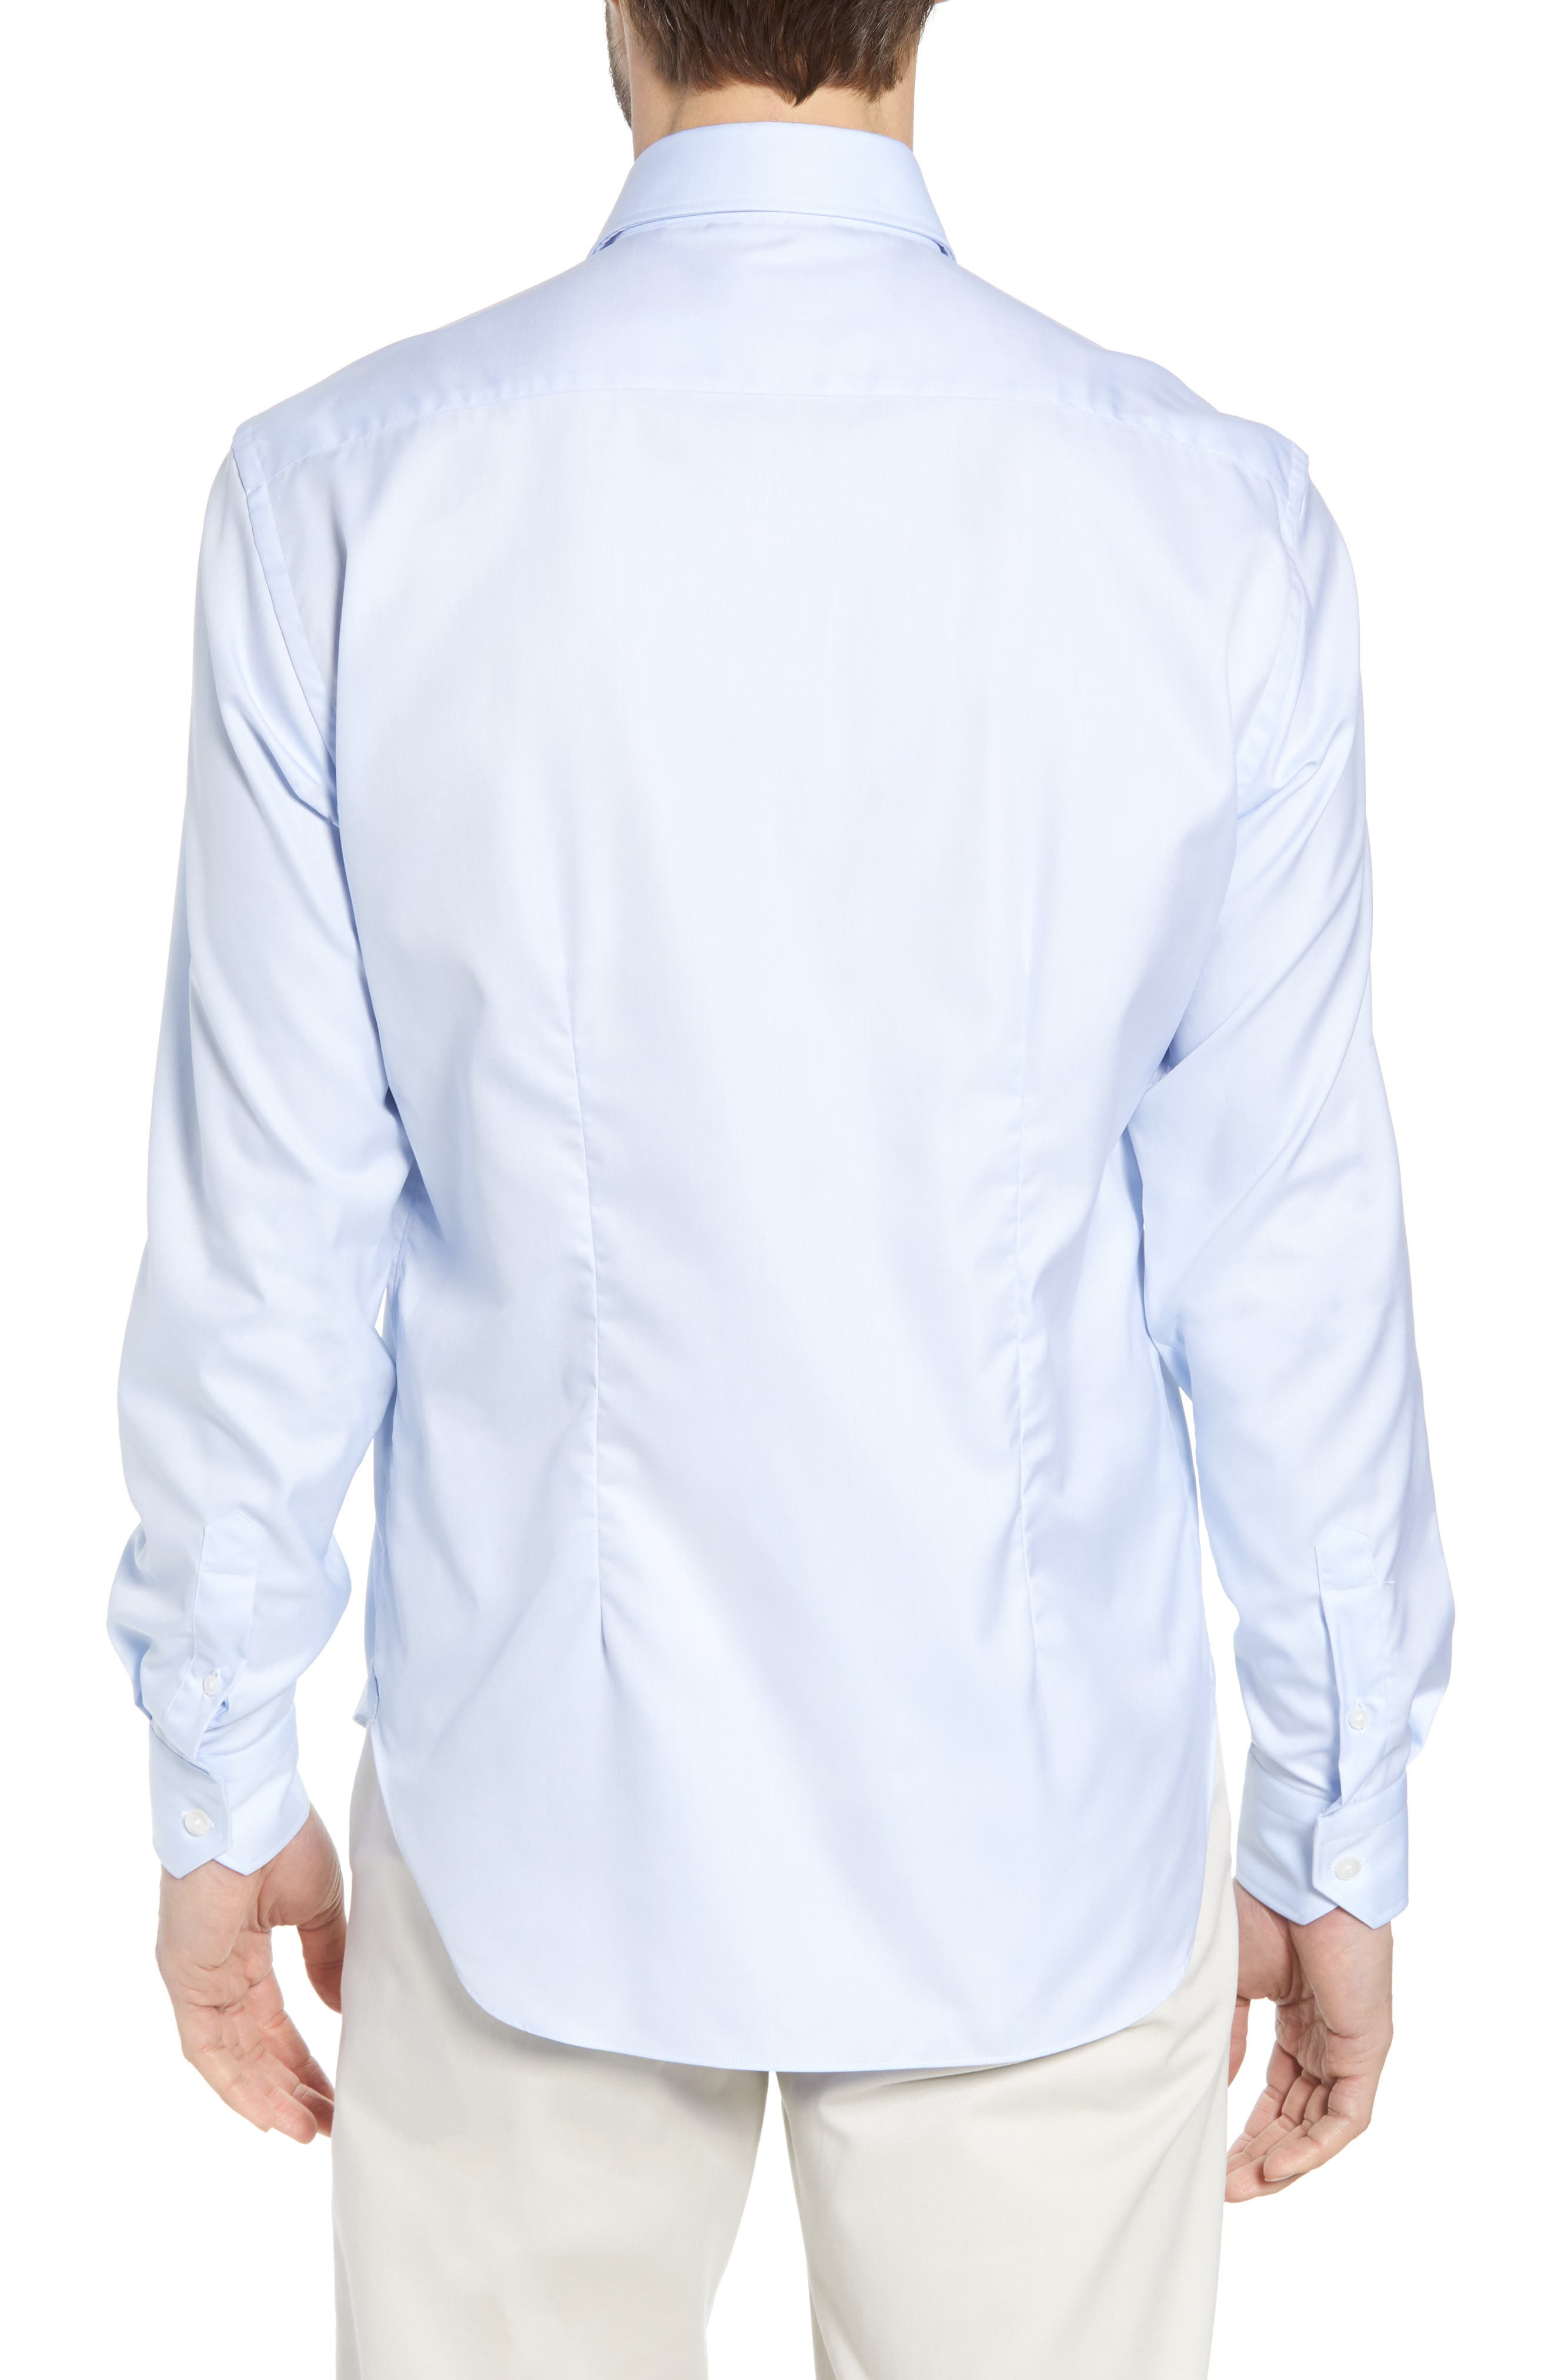 Crease Free Extra Soft Sport Shirt,                             Alternate thumbnail 2, color,                             400